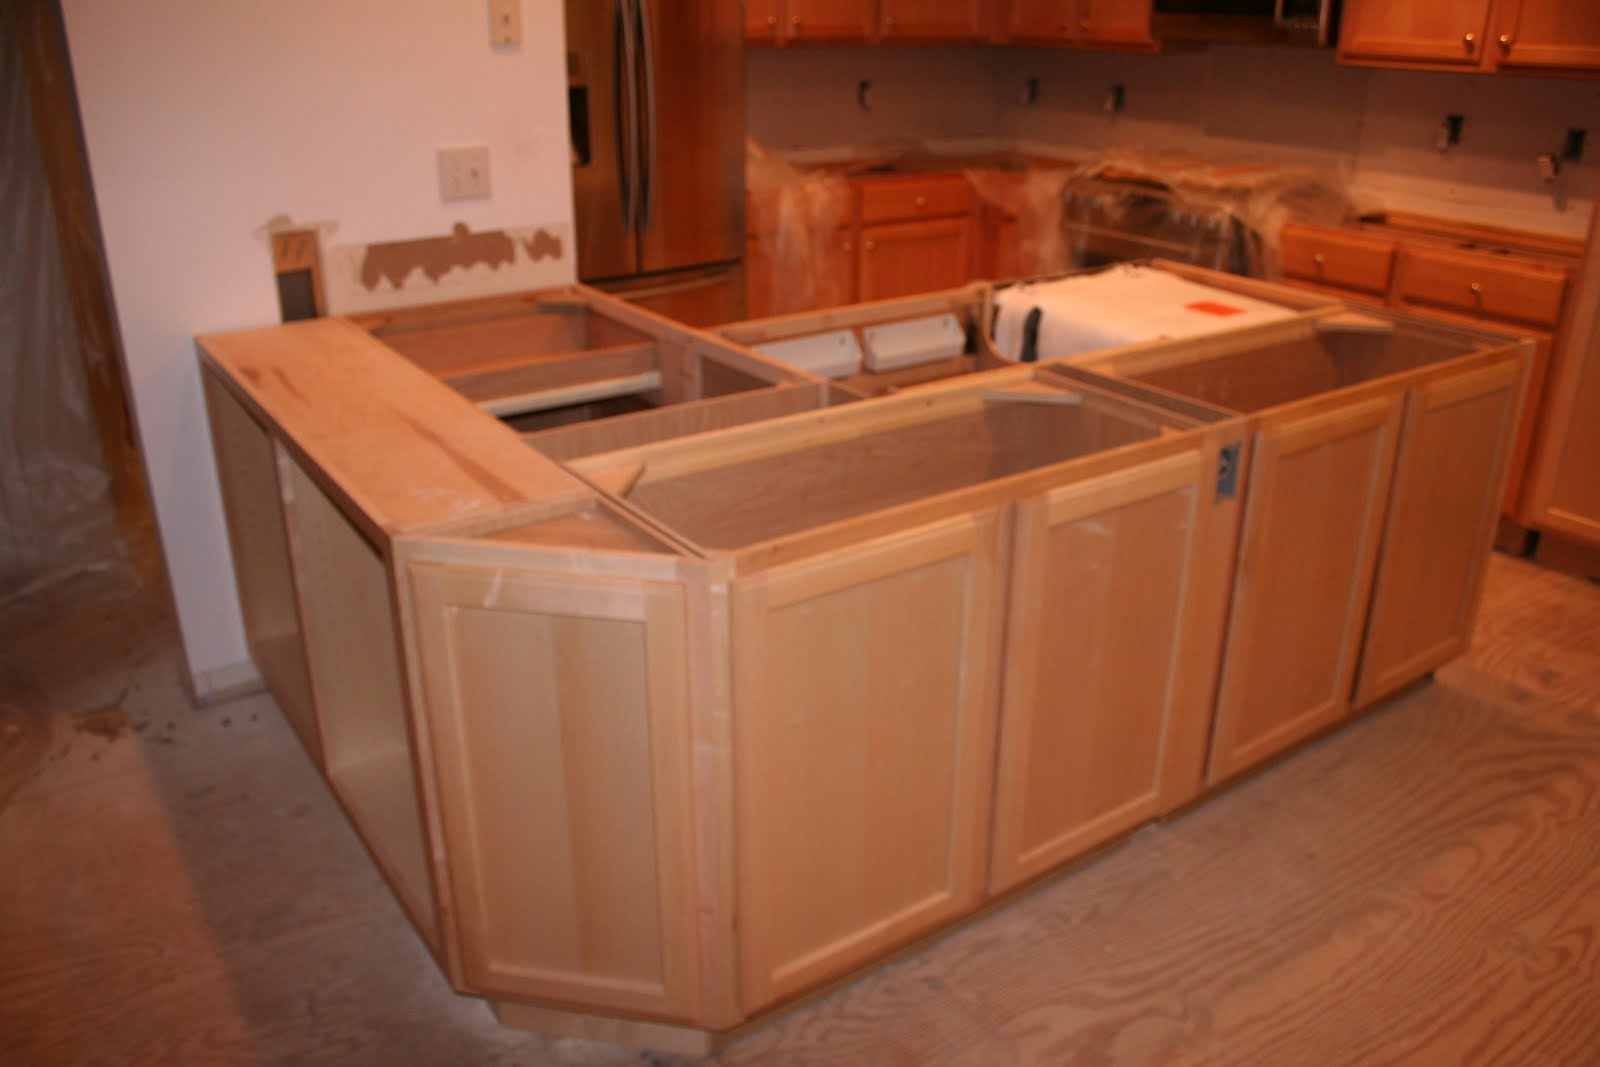 Kitchen Island From Cabinets